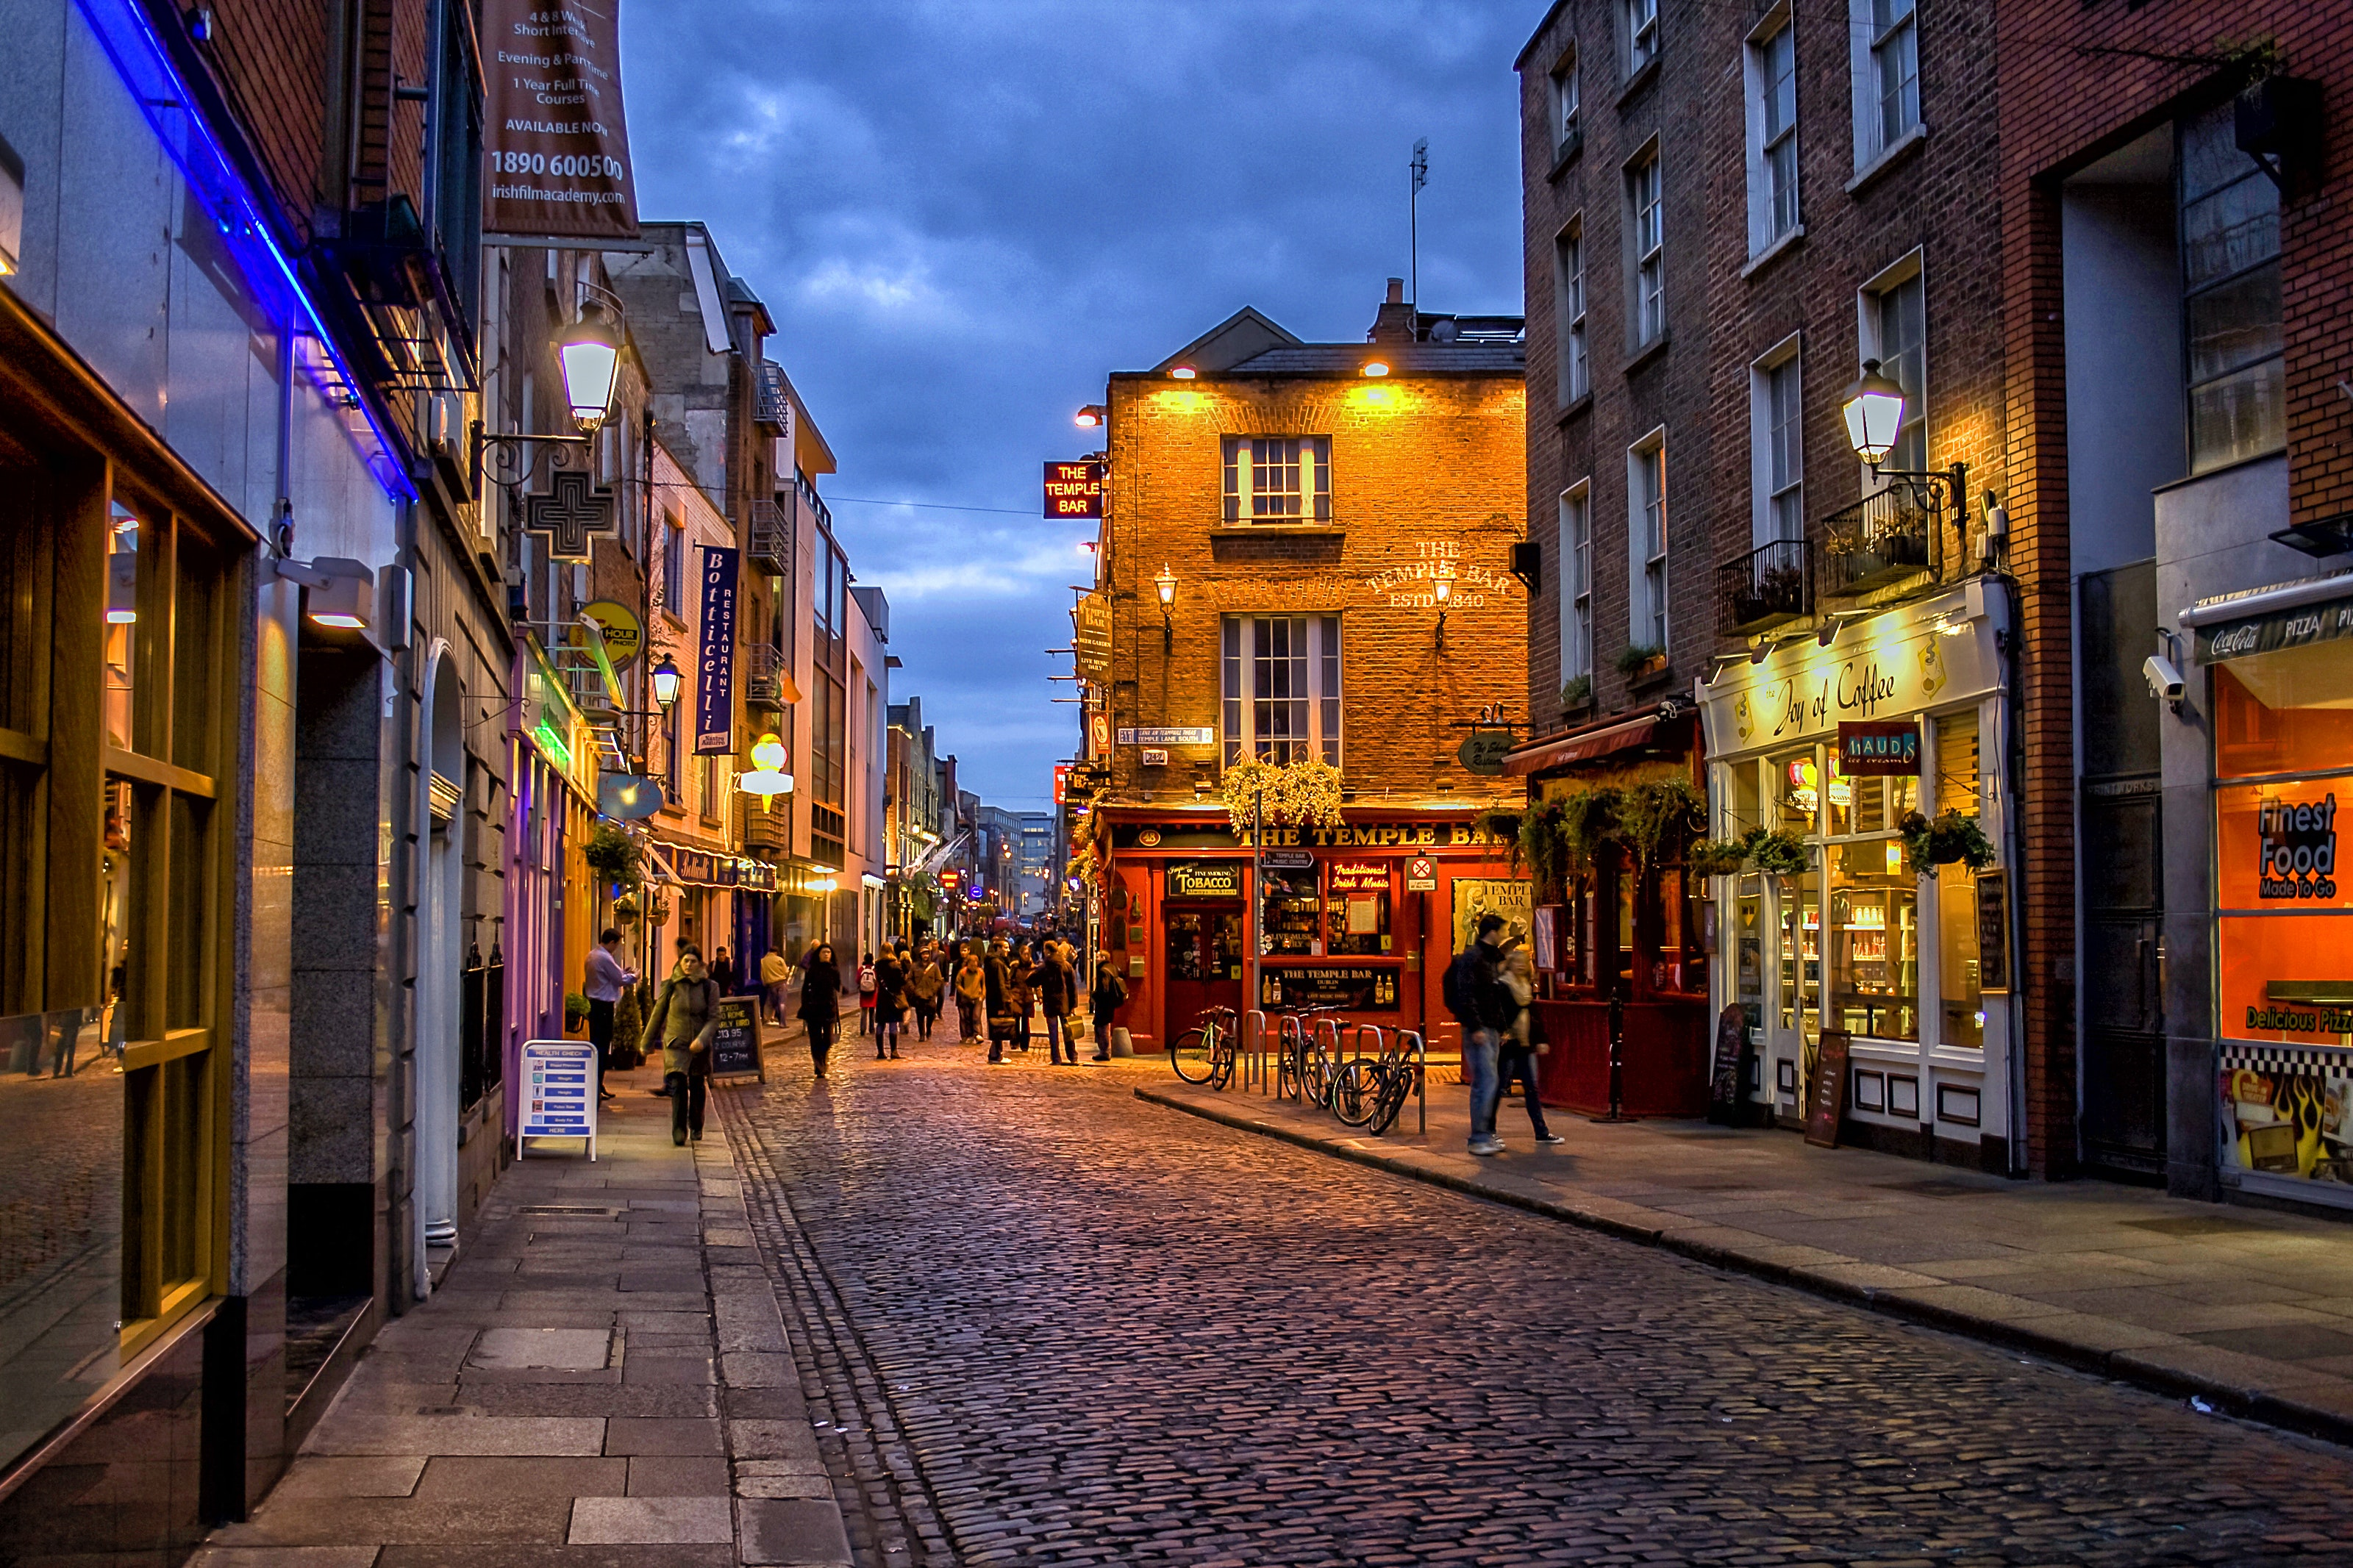 Temple bar district in Dublin at night.